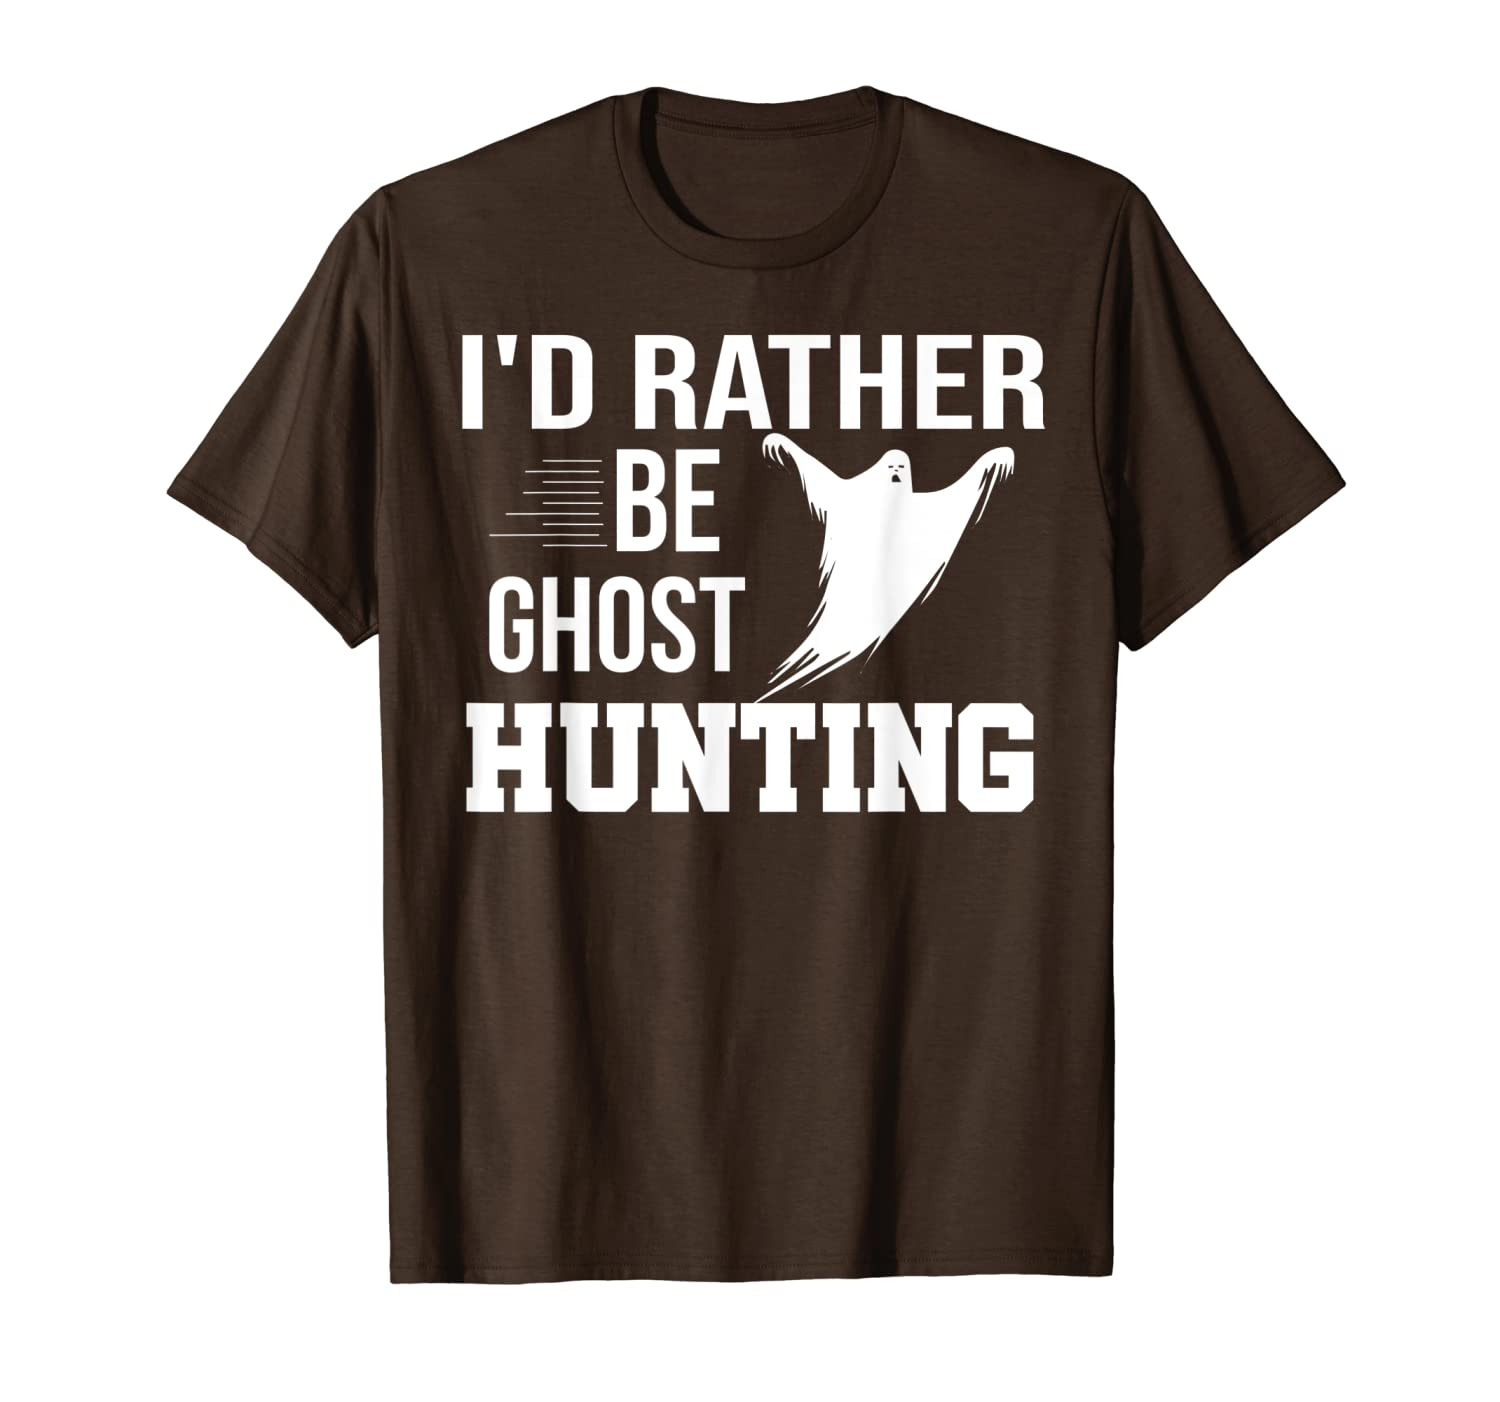 Id Rather Be Ghost Hunting Shirt Ghost Hunter Ghosting Gift T-Shirt Unisex Tshirt